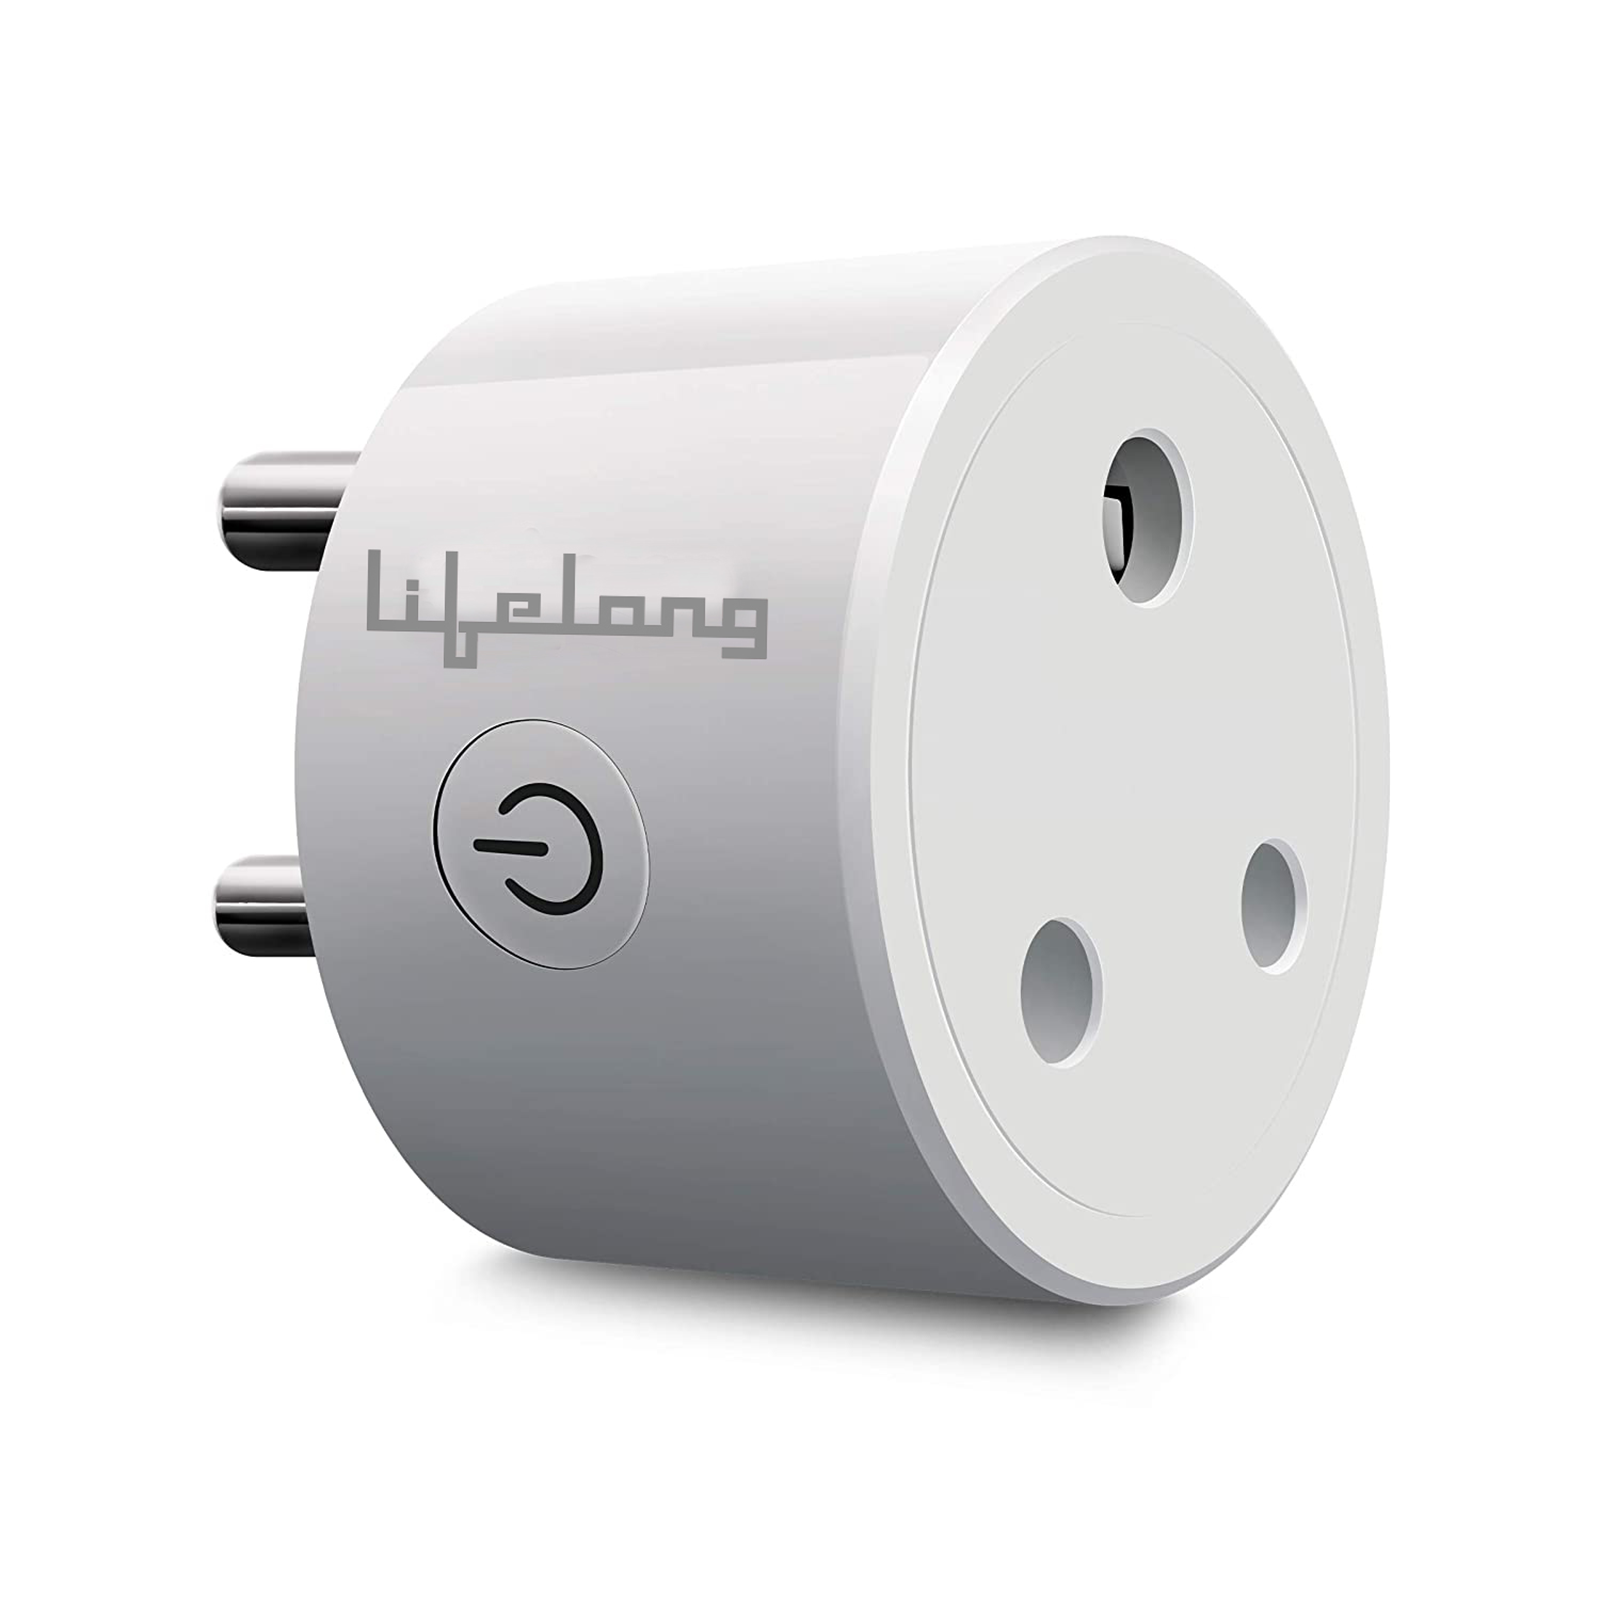 Lifelong Alexa and Google Assistant Supported Smart Plug For Home Appliances (Flame Retardant Materials, LLSP16A, White)_1